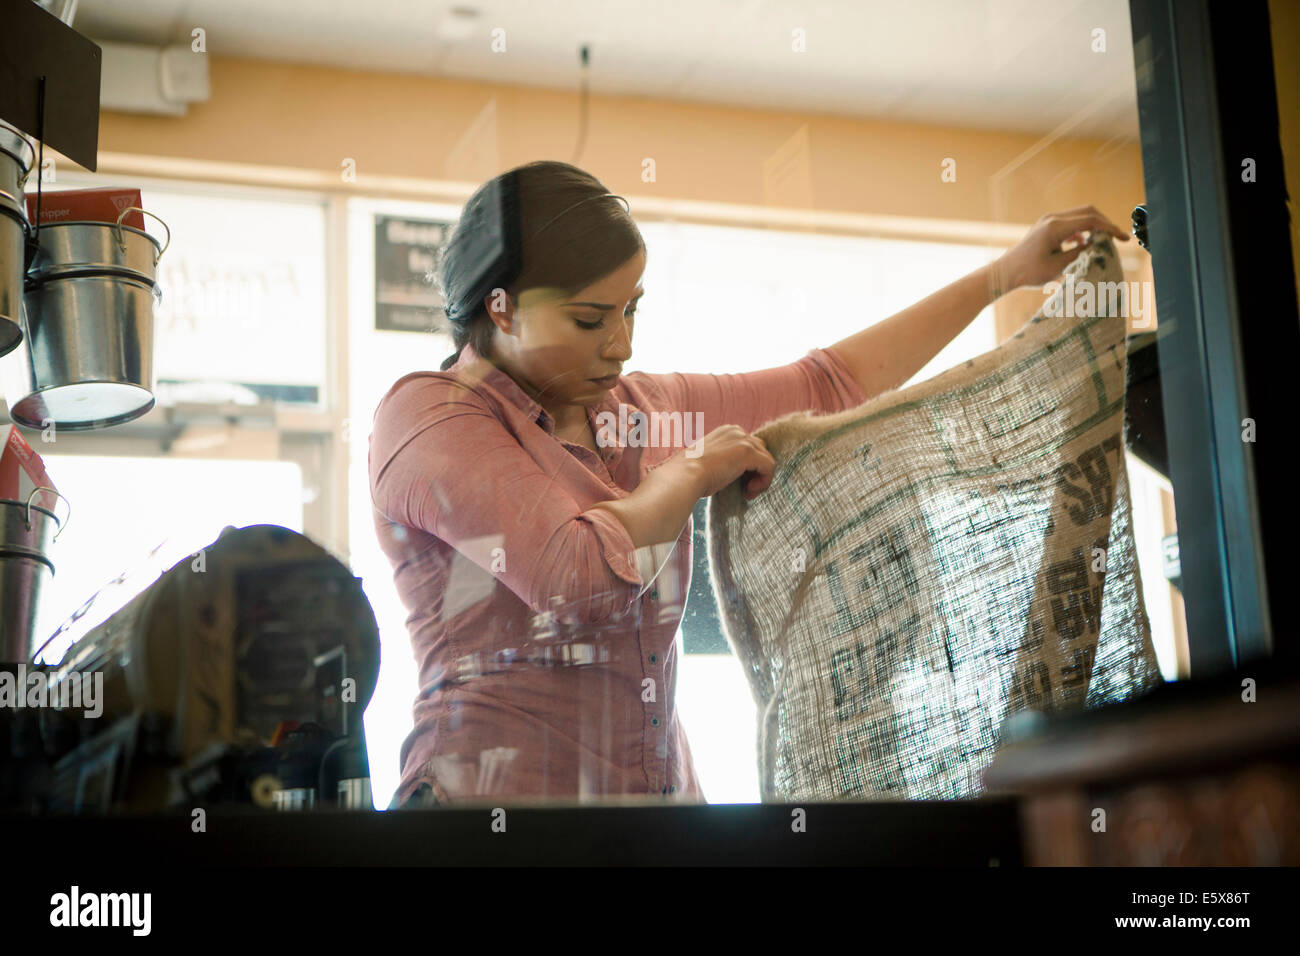 Young woman holding up empty sack used for coffee roasting machine in cafe - Stock Image